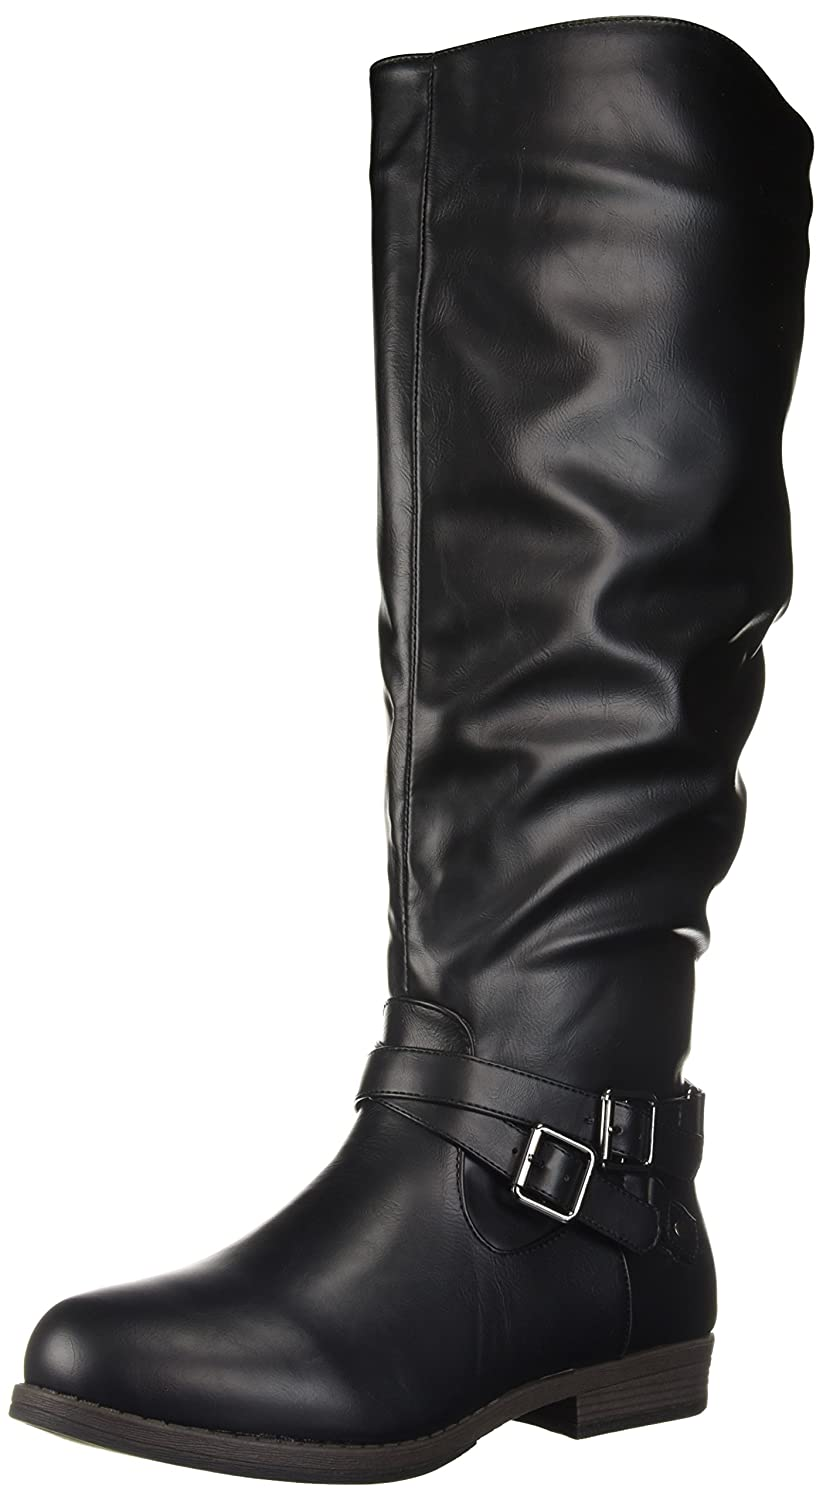 Brinley Co Women's Molly Riding Boot Regular & Wide Calf B00MOUH2LE 10 B(M) US|Black